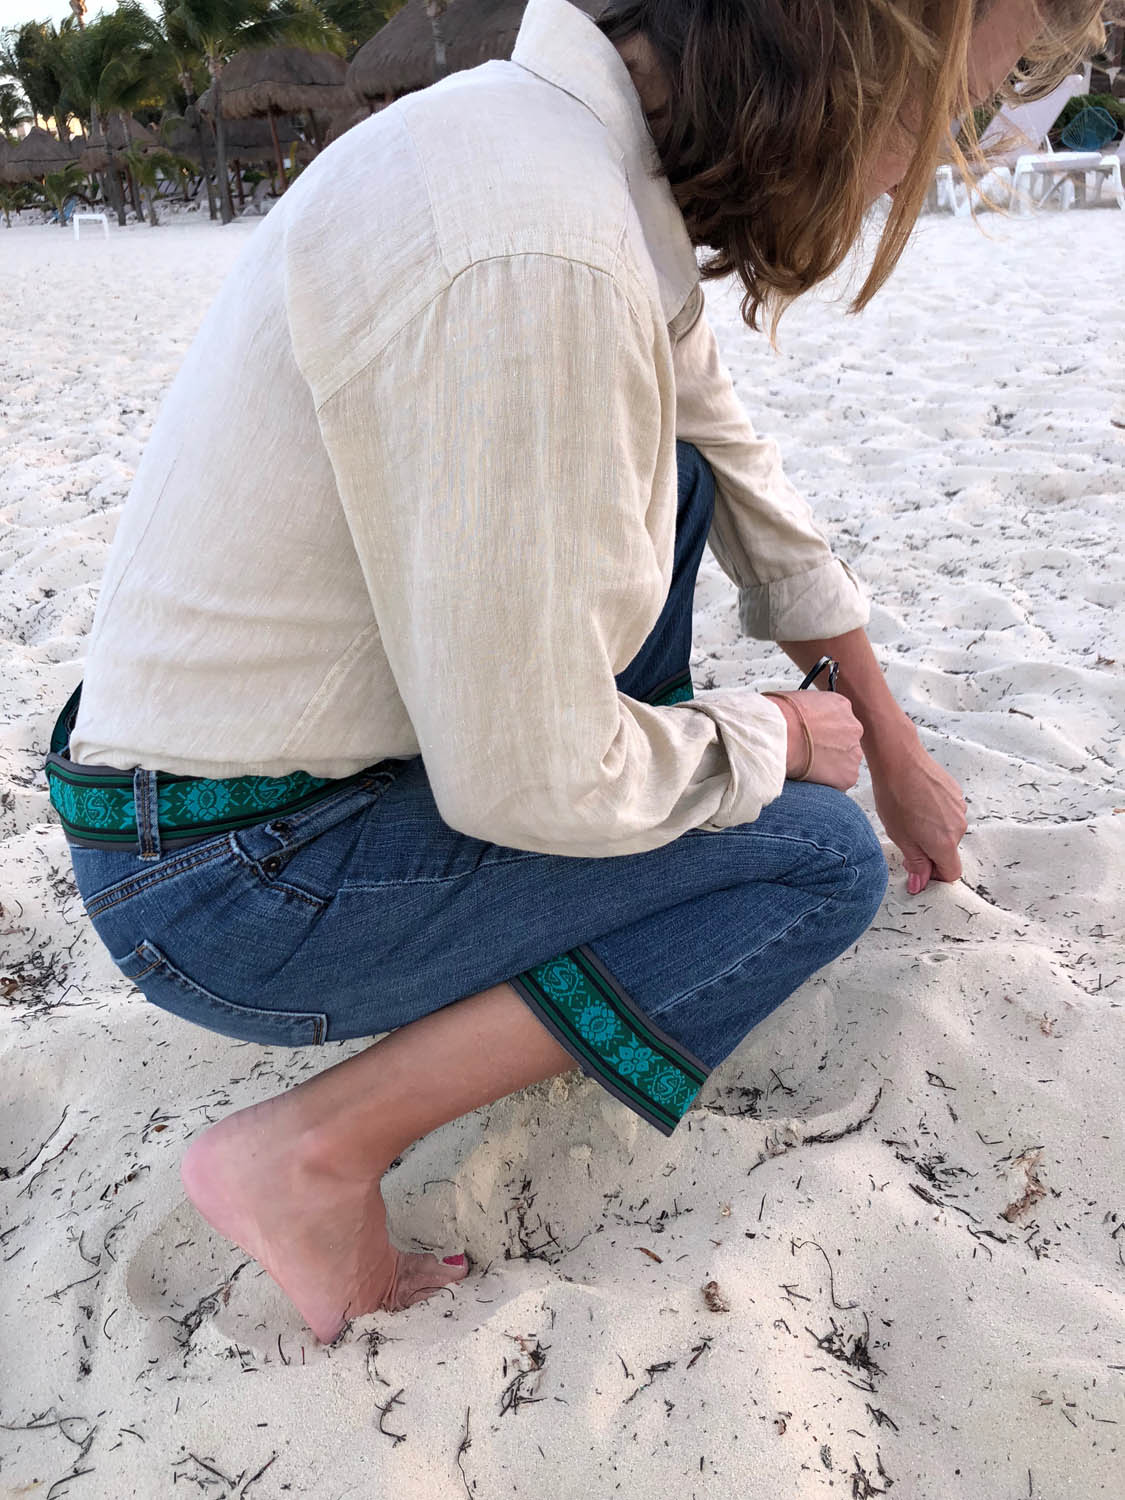 kneeling in the sand with embellished jeans